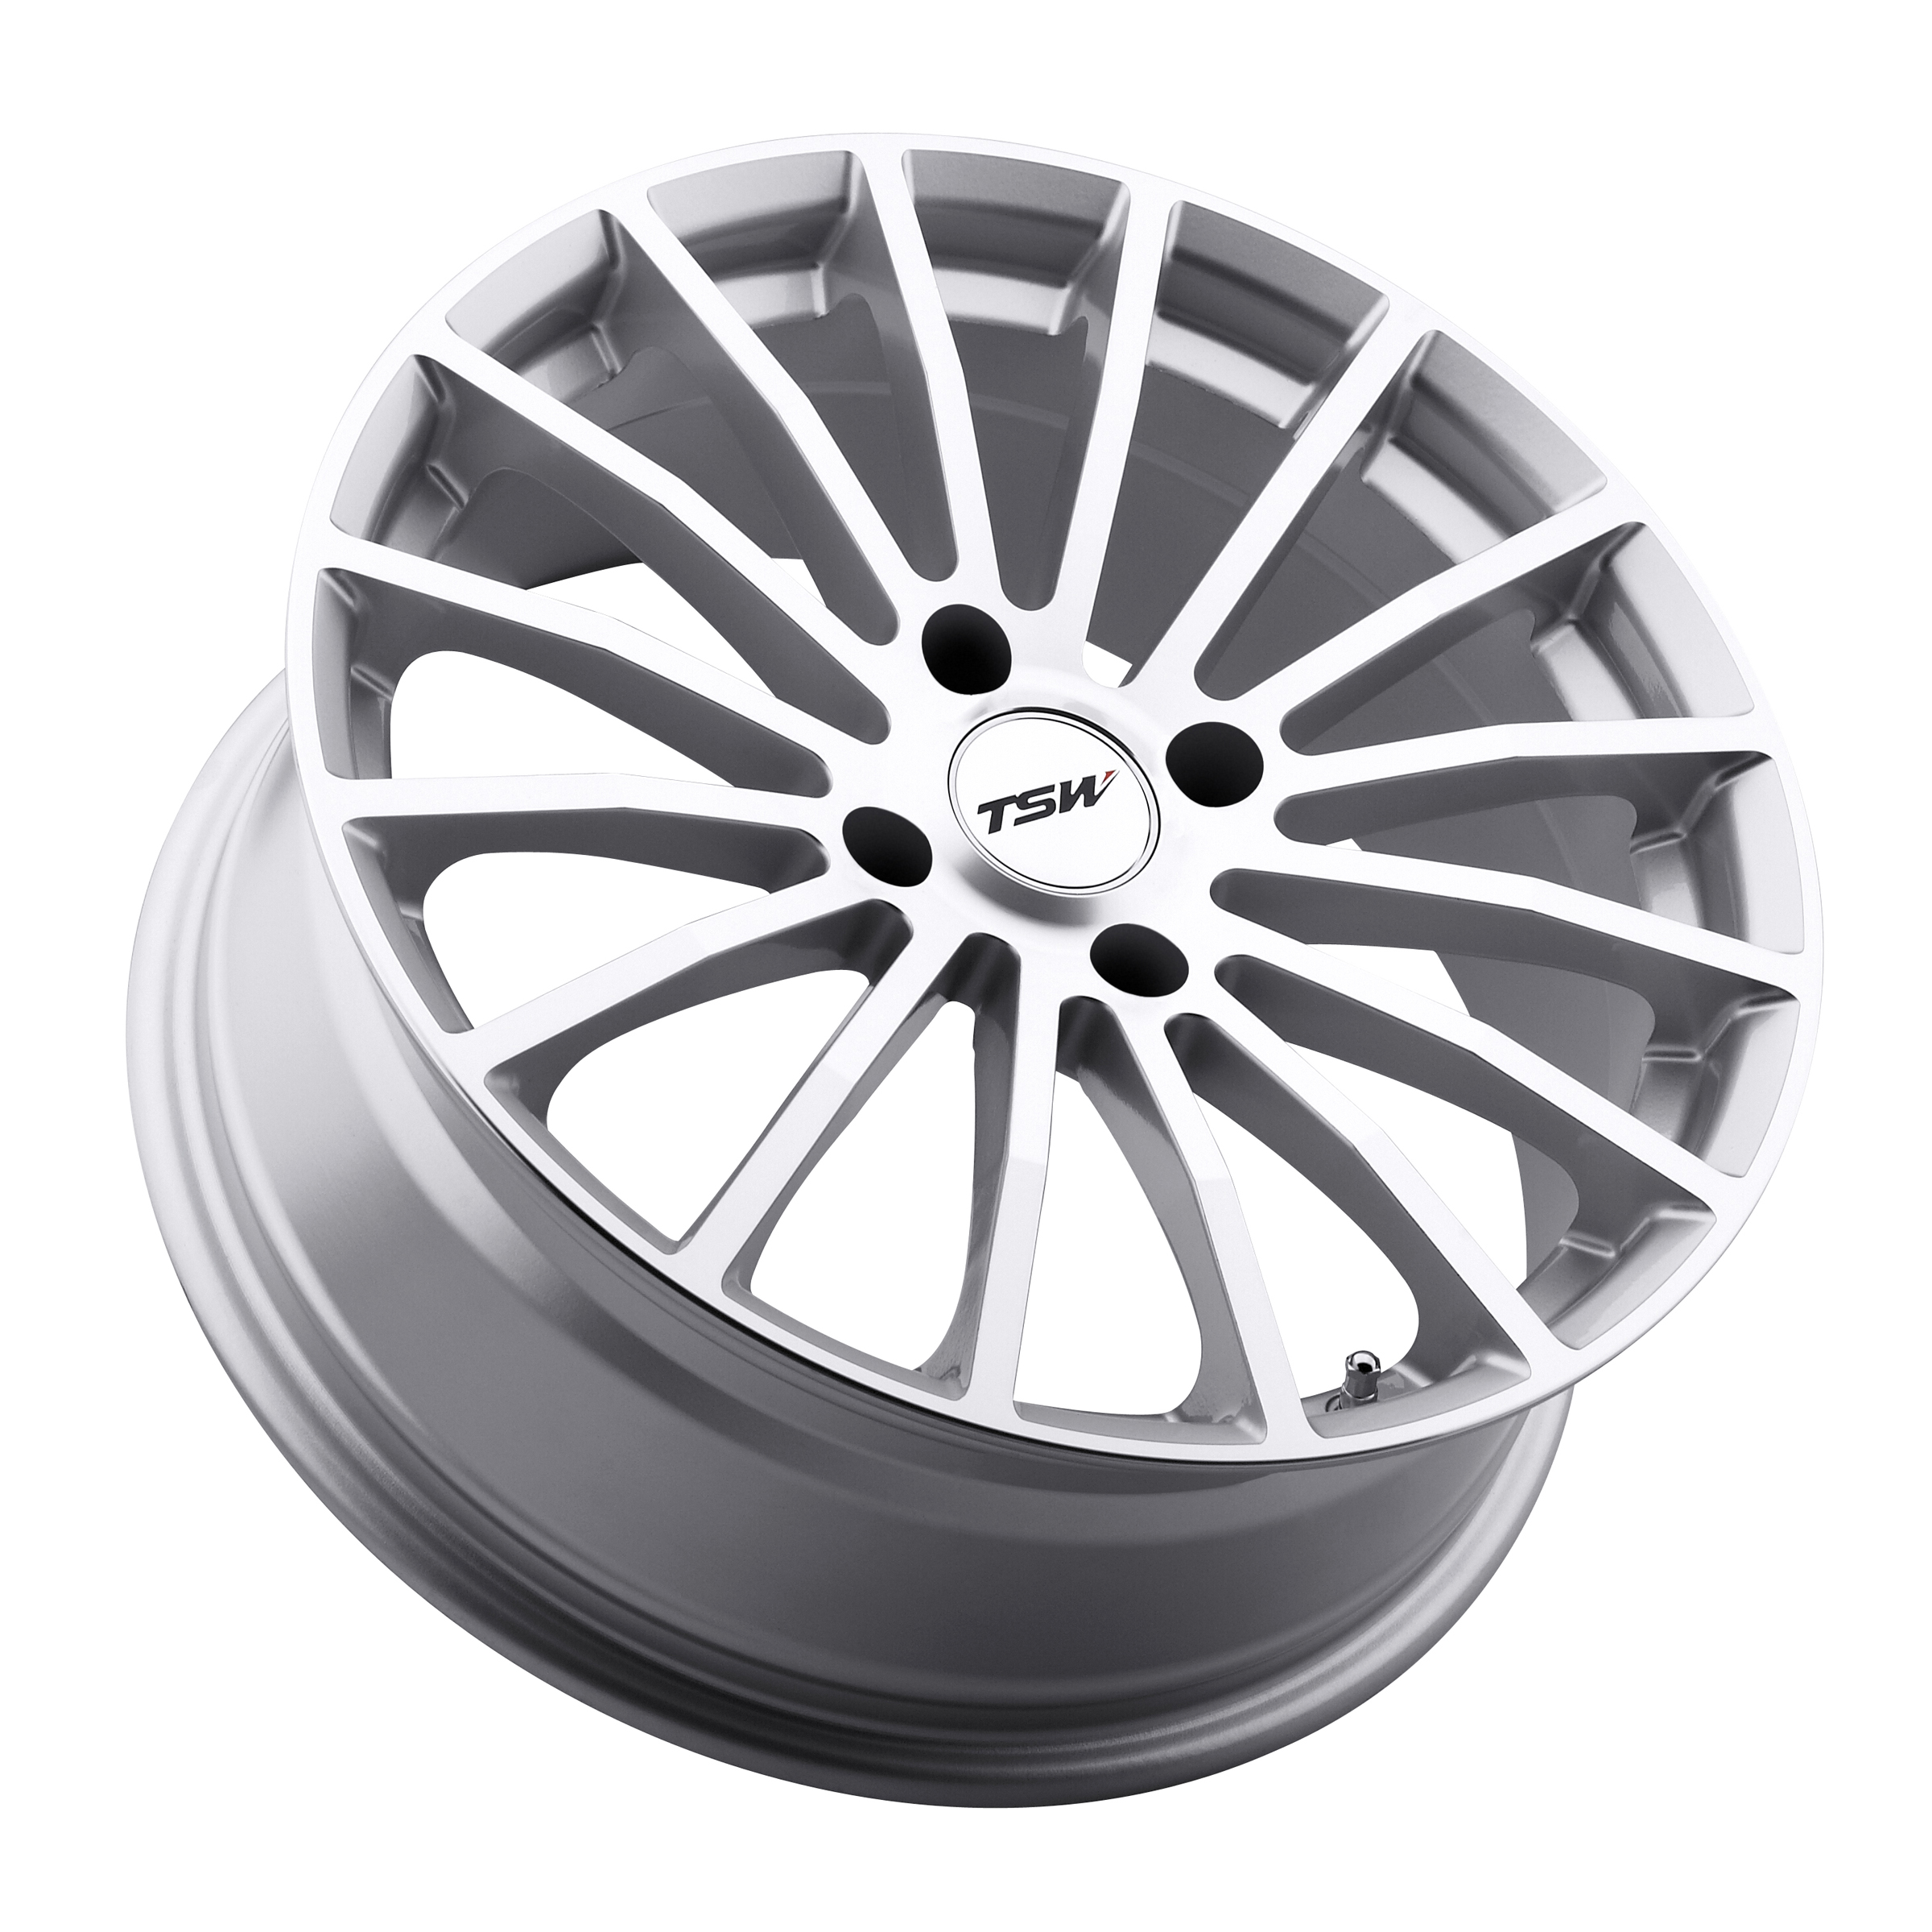 Mallory 4 Alloy Wheels by TSW